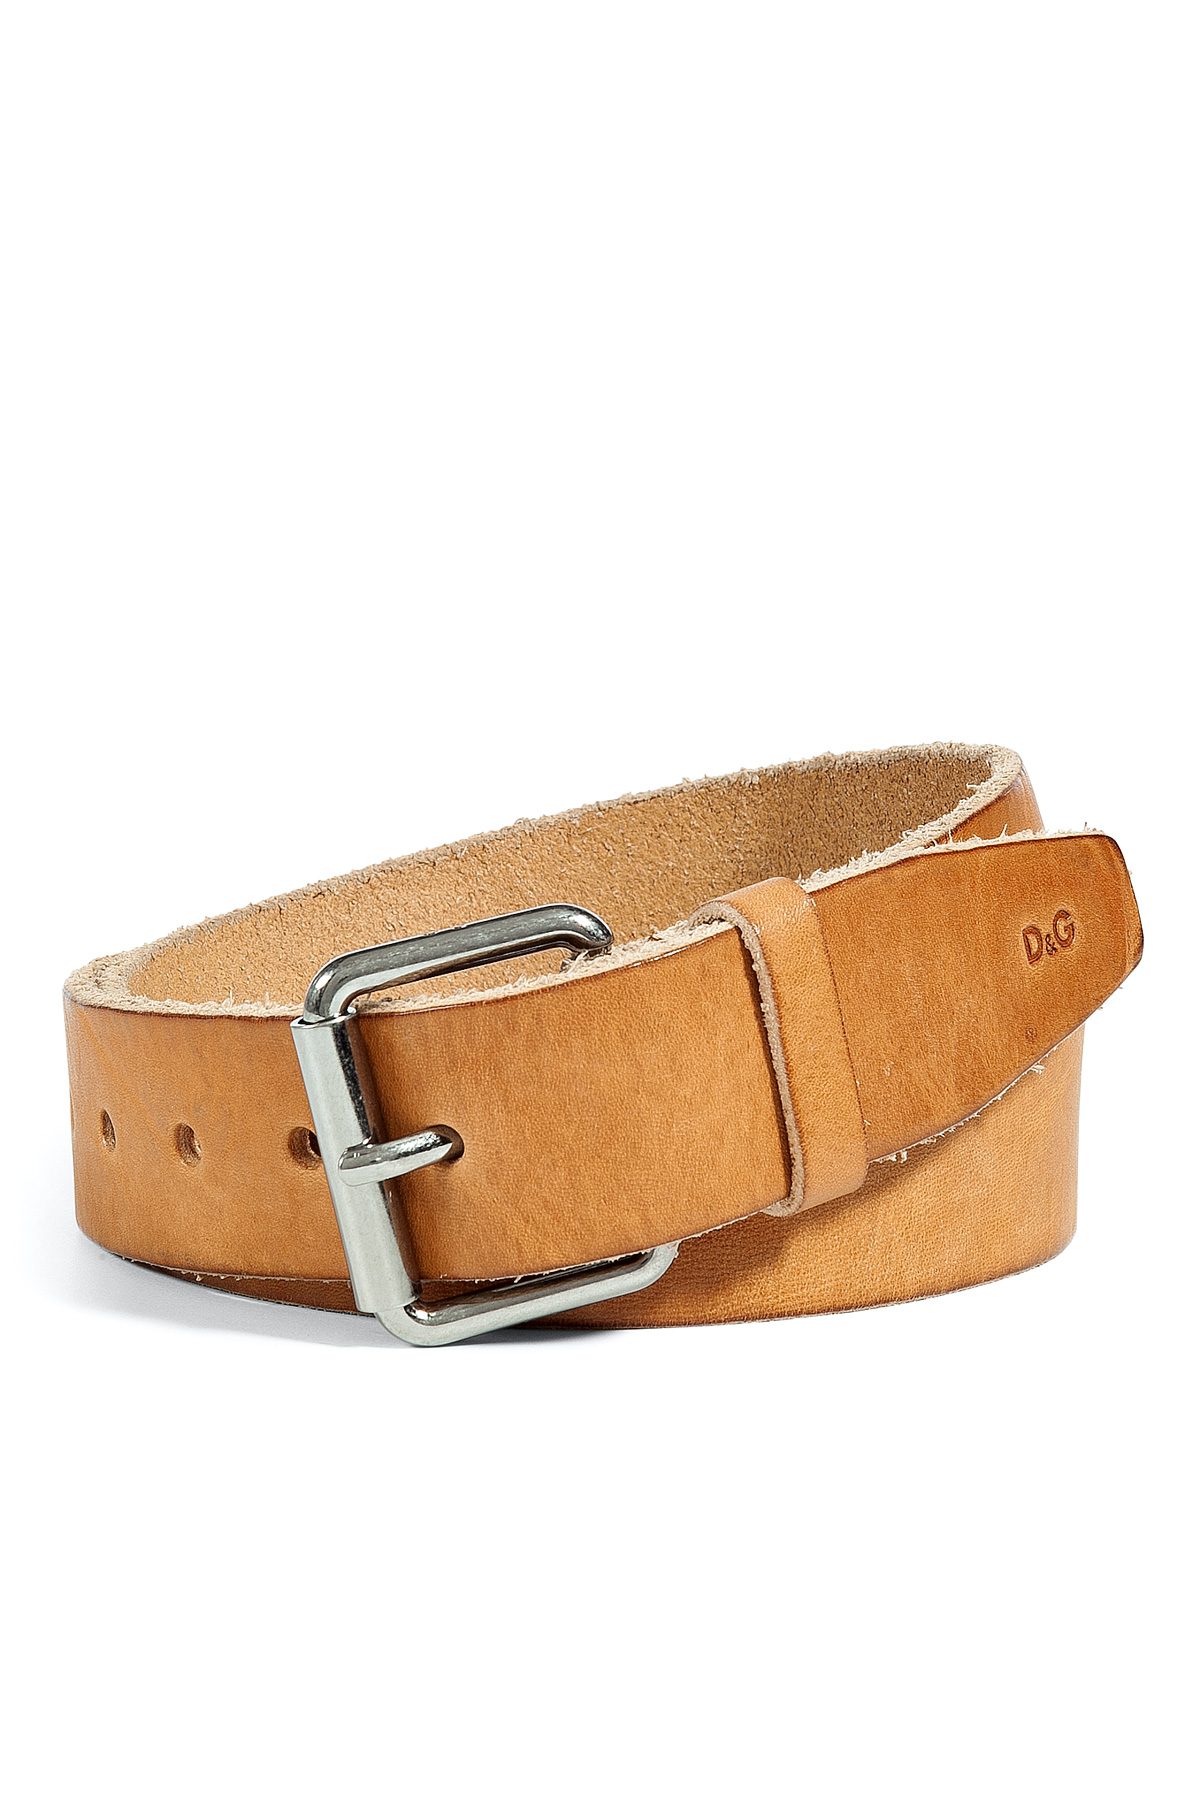 d g leather belt in beige for lyst